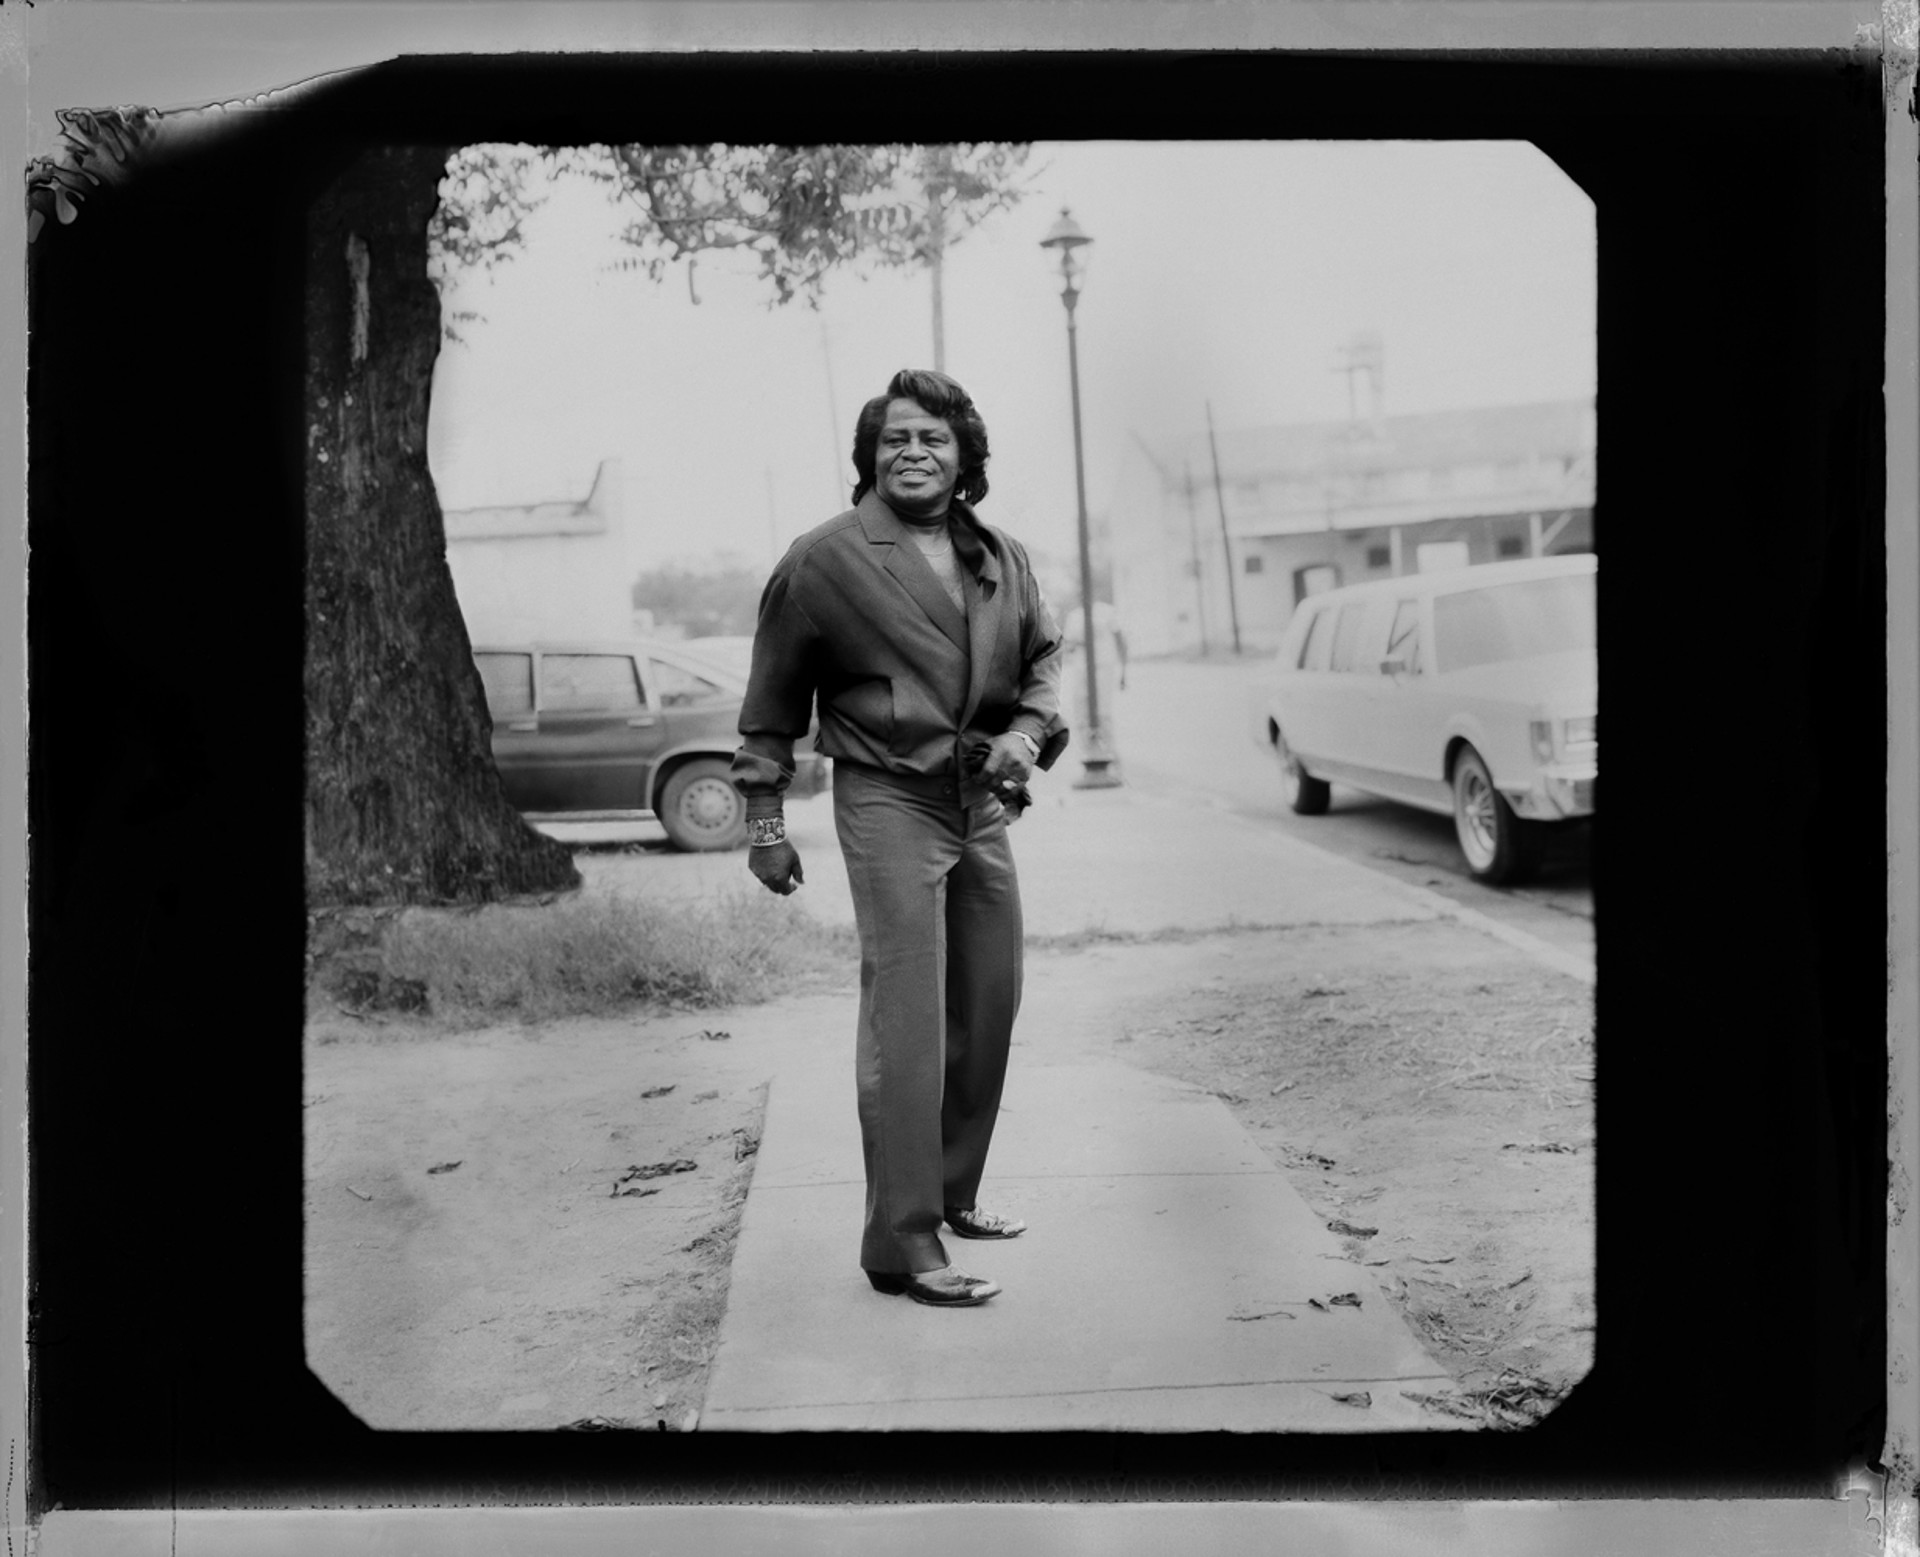 91046 James Brown Outside the Limo 665 F11 BW by Timothy White